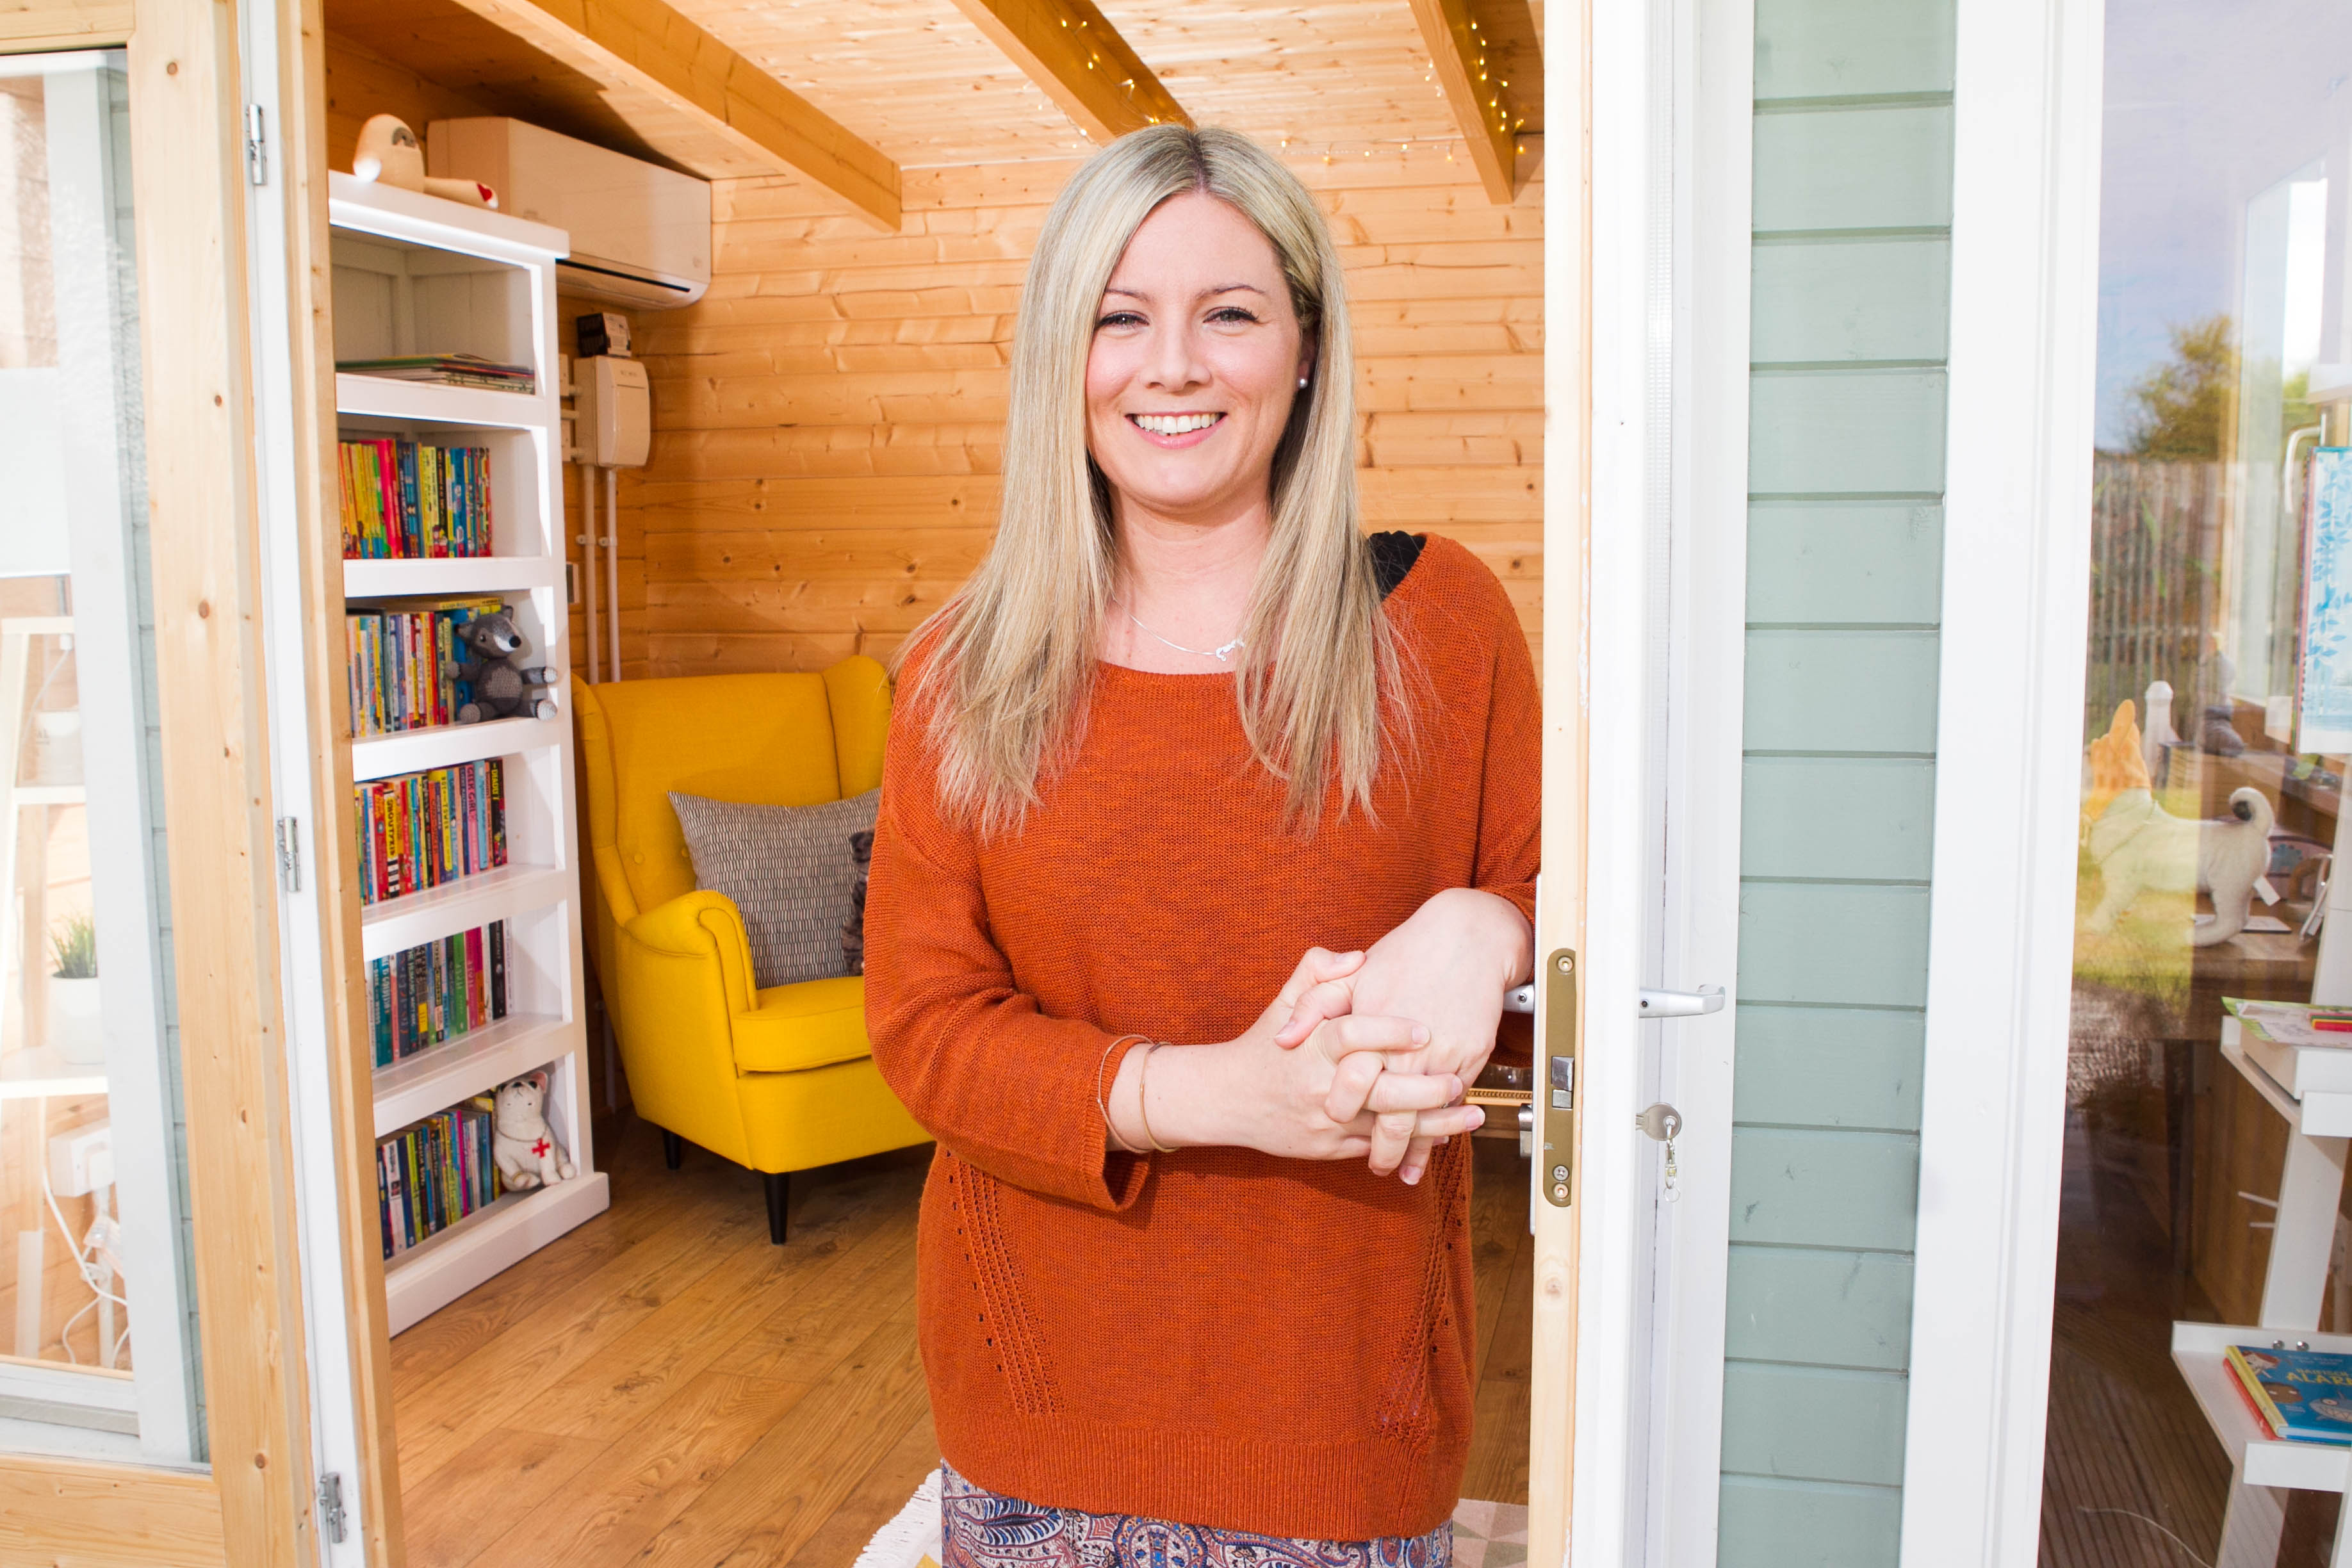 Author Pamela Butchart wrote some of her book in the shed